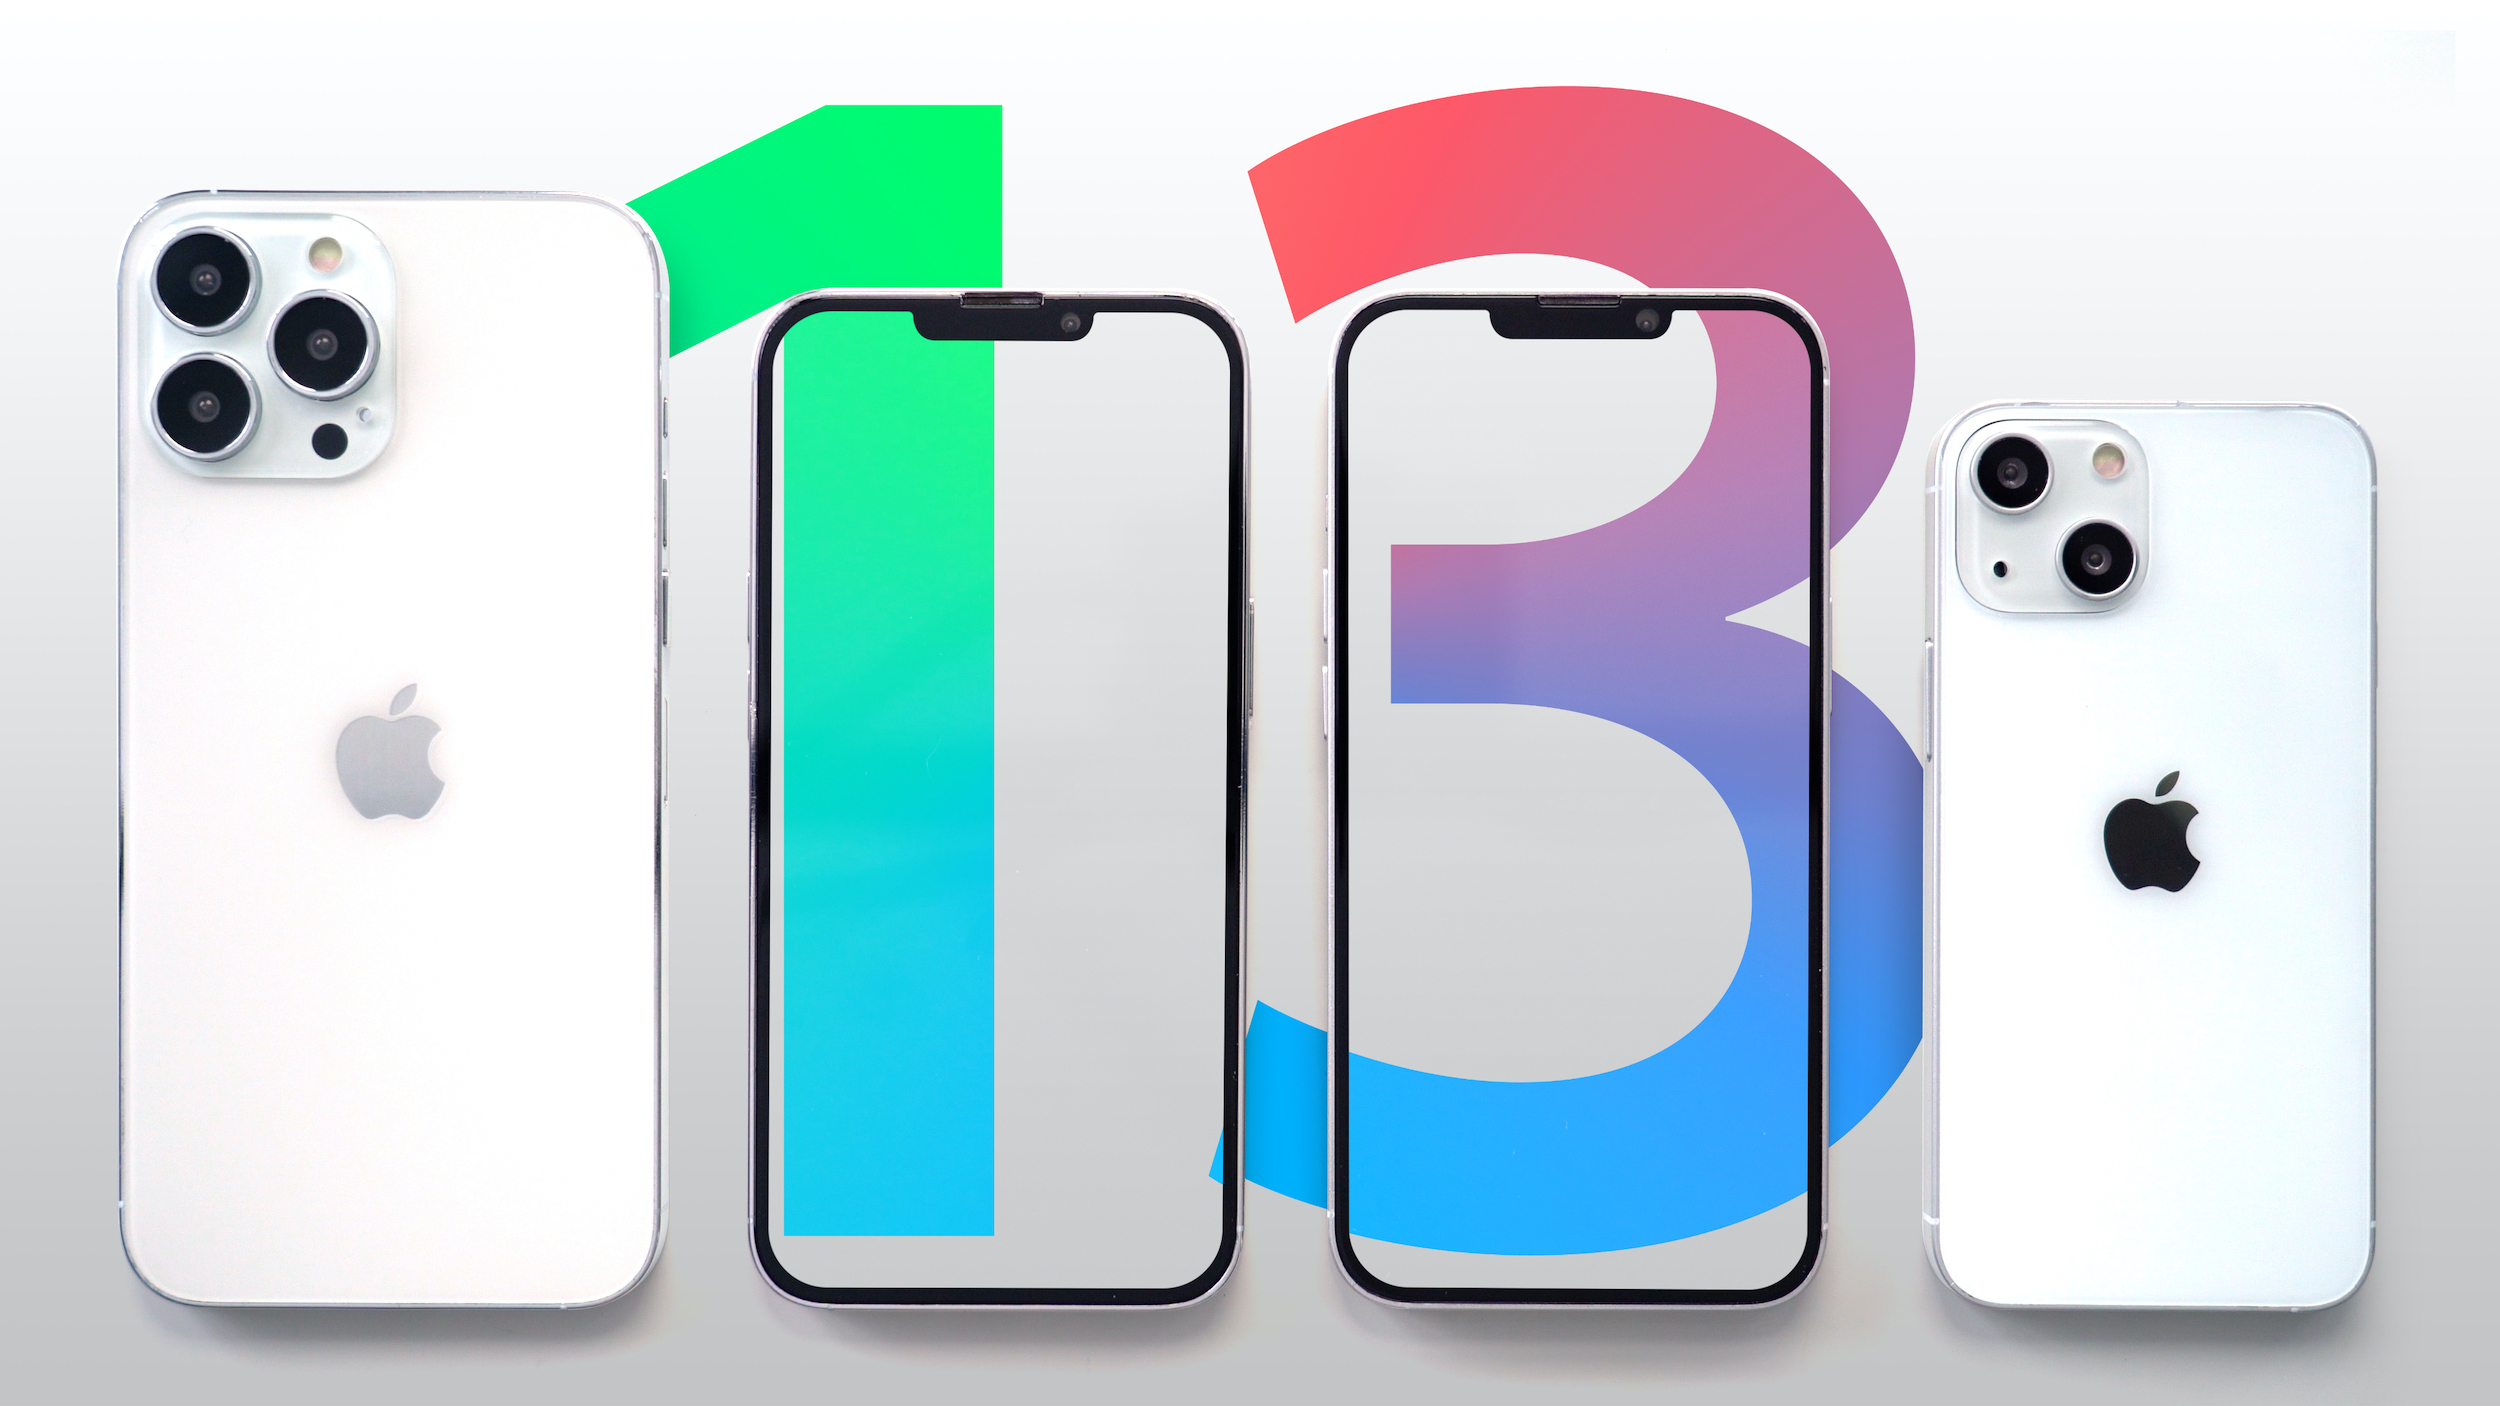 Apple Reportedly Increasing iPhone 13 Prices to Compensate for Increased Chip Production Cost